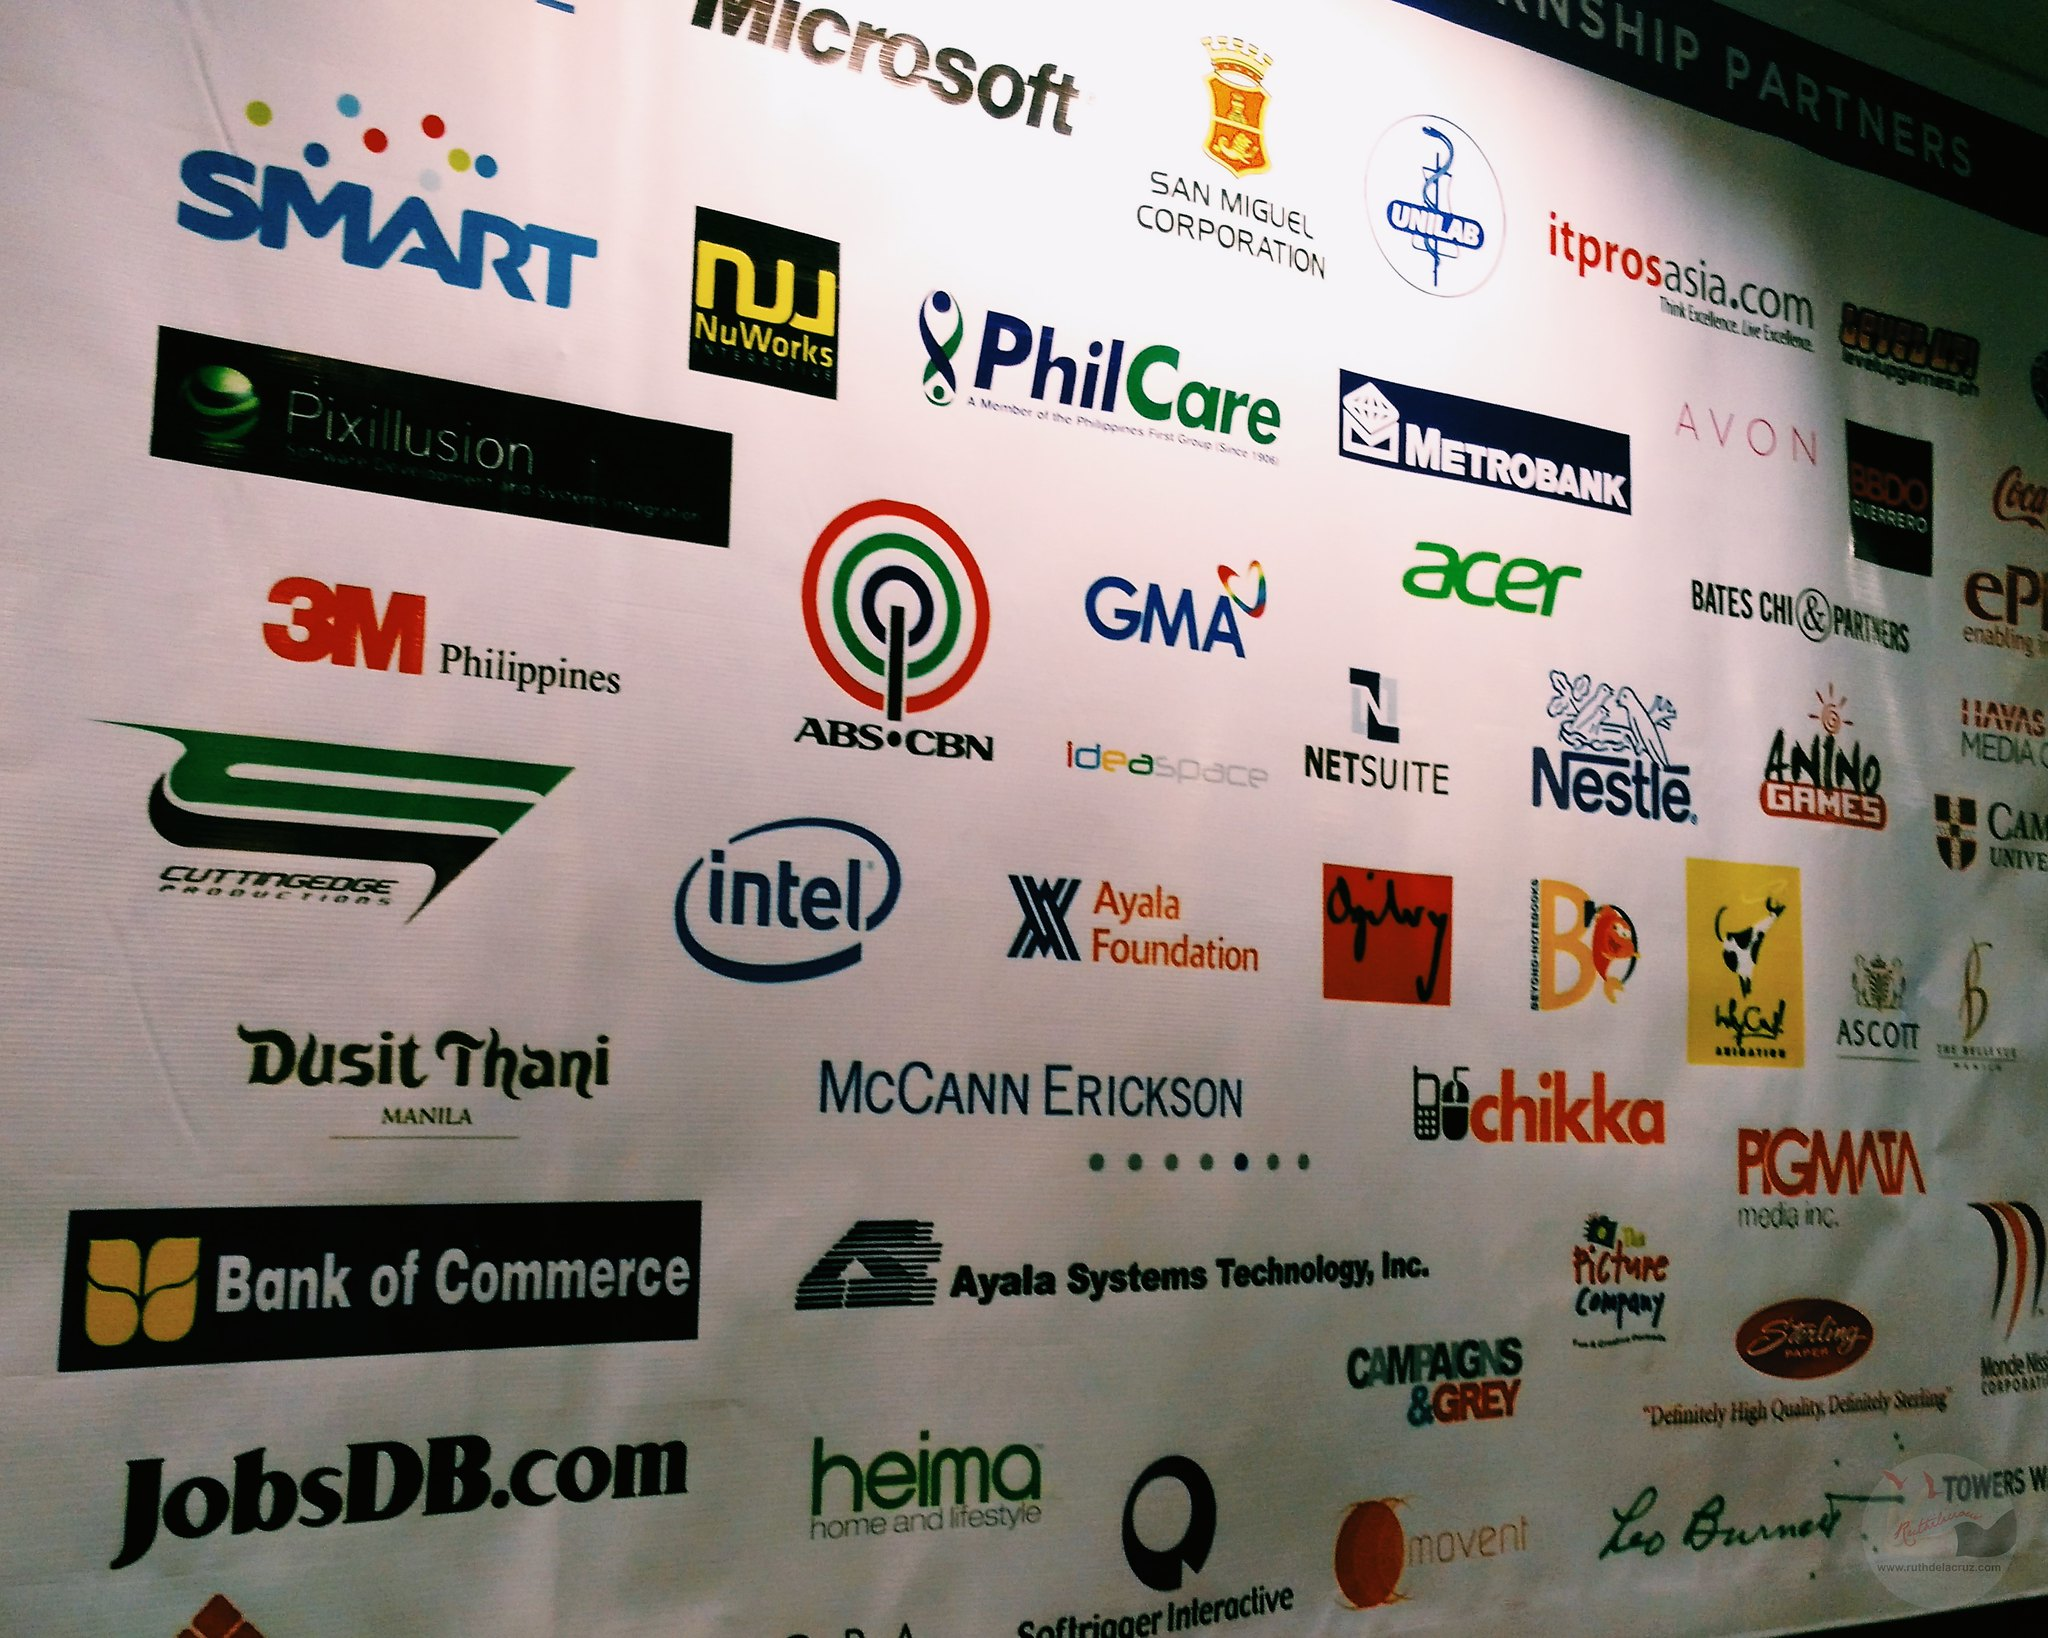 iacademy partner brands